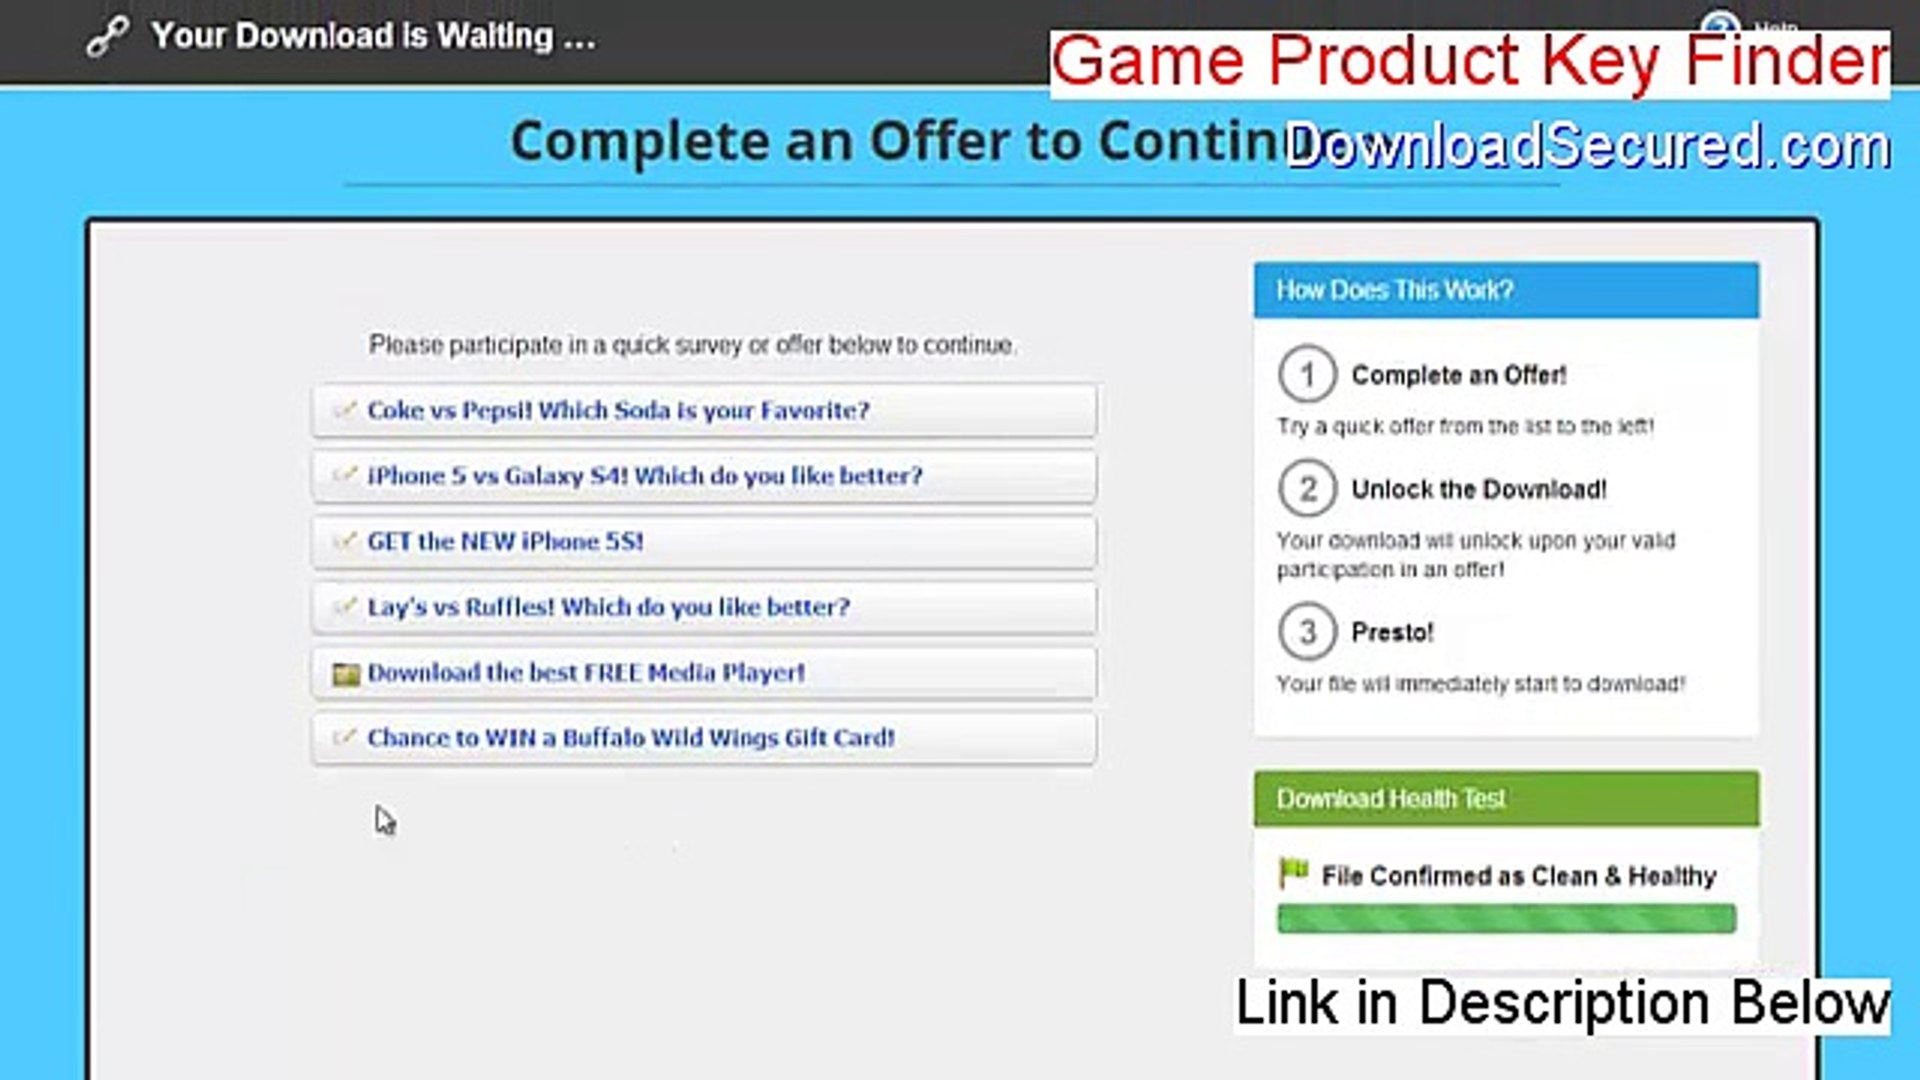 Game Product Key Finder Full (Download Now 2015)